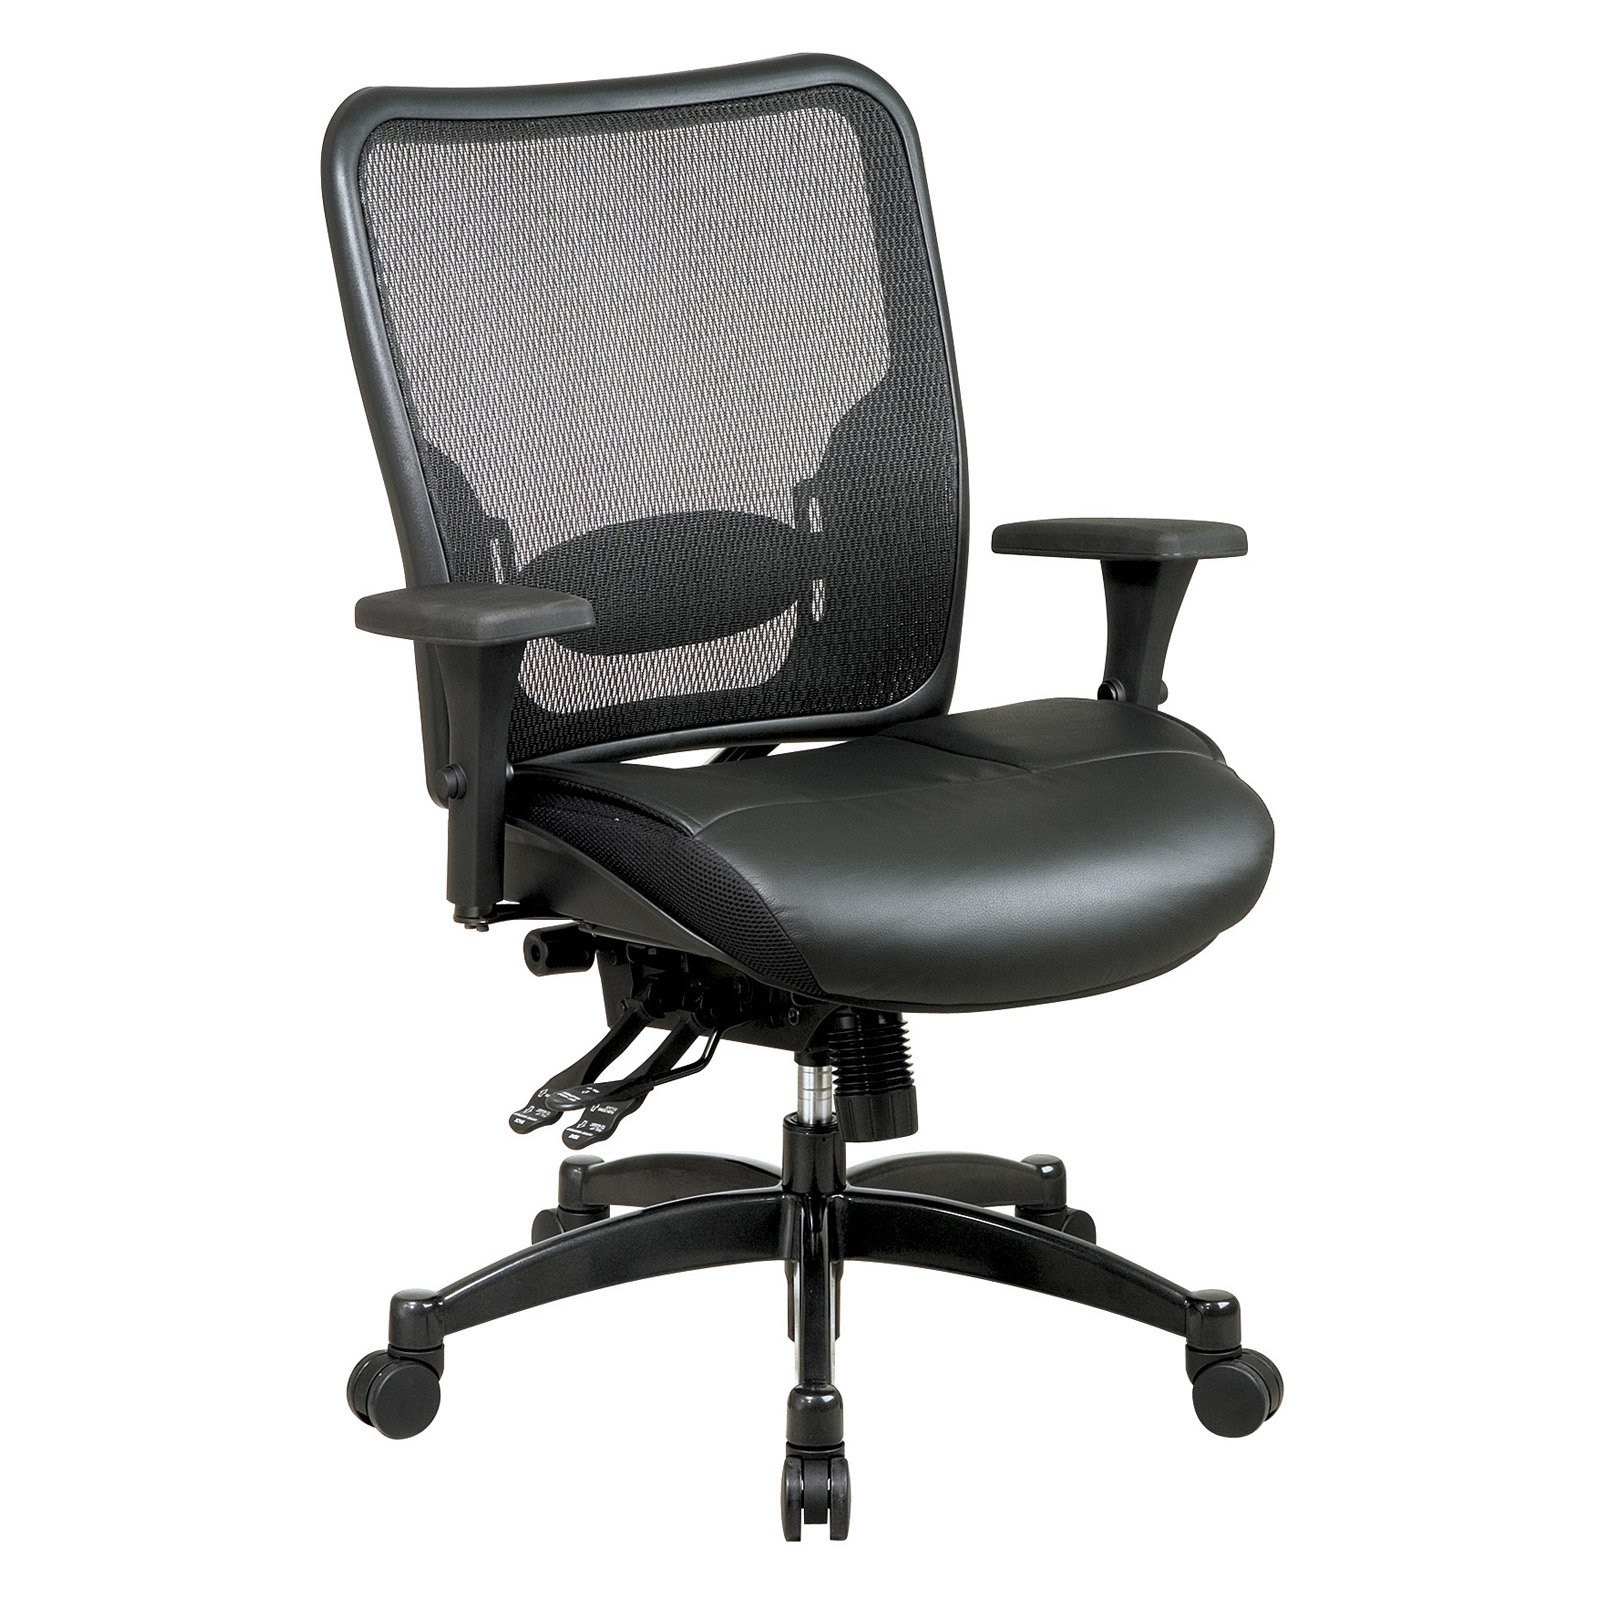 Space Seating Professional Breathable Mesh Black Back and Layered Leather Seat Ergonomic Chair with Adjustable Lumbar... by Office Star Products